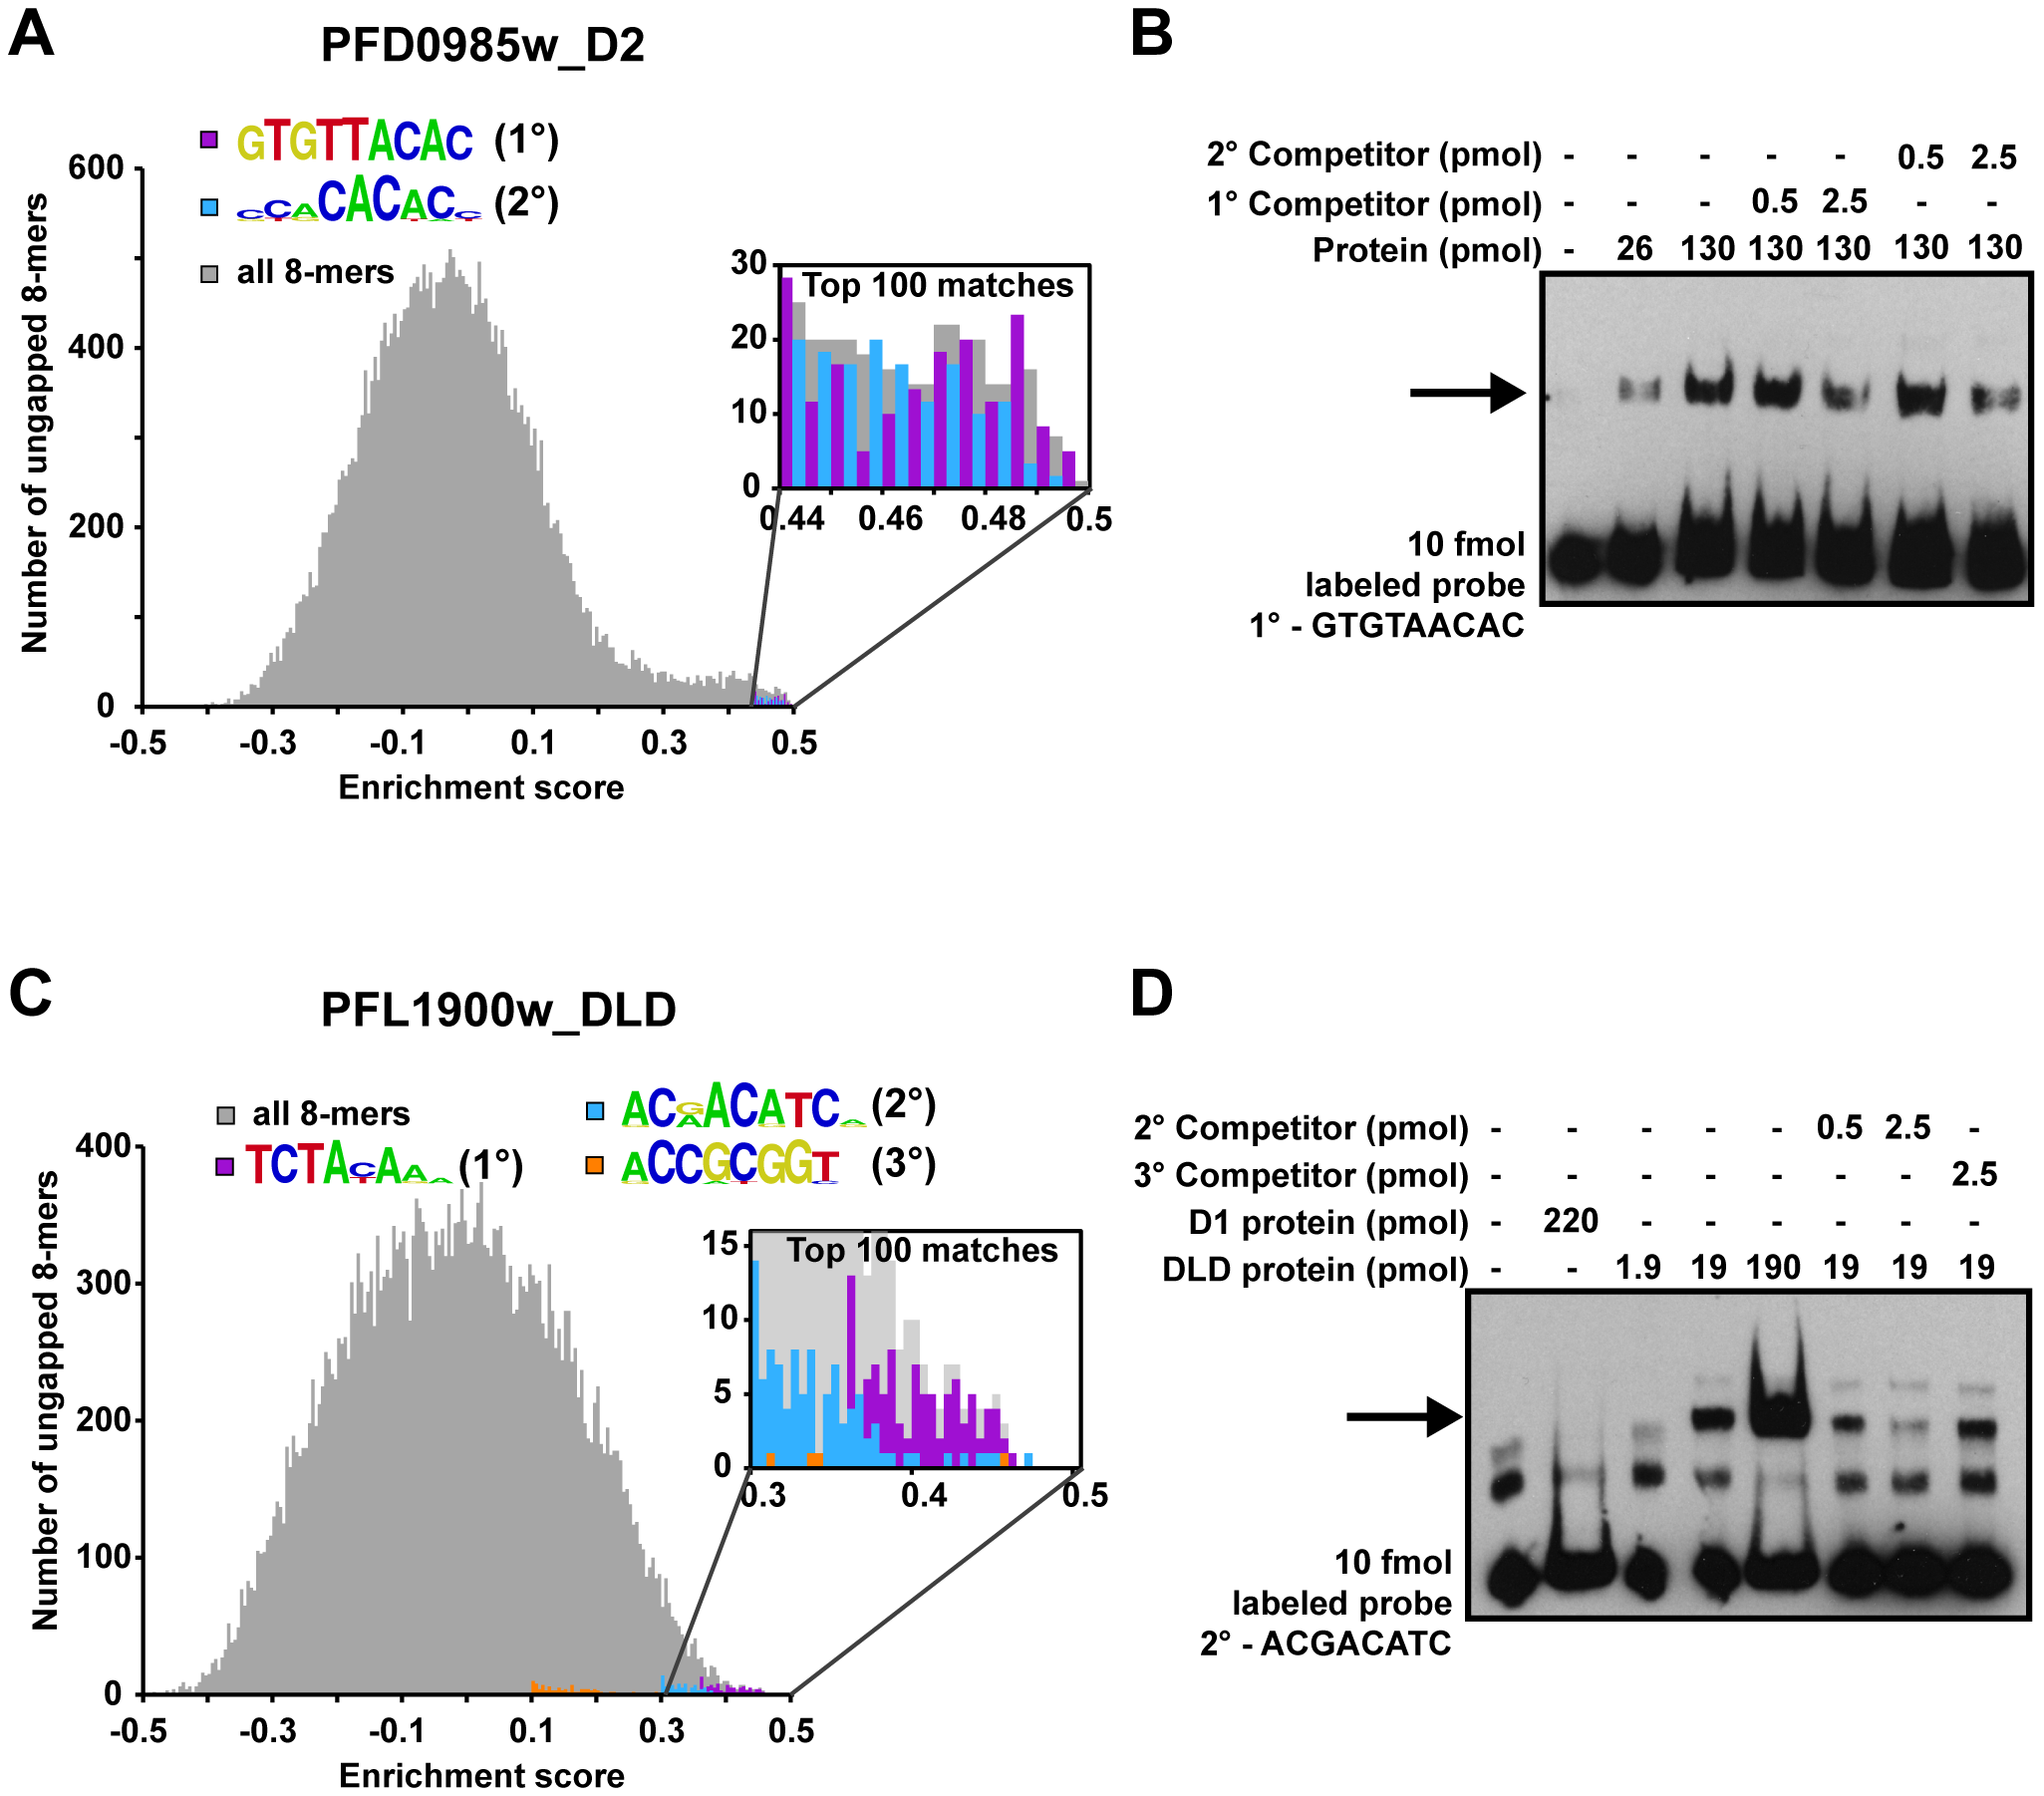 Secondary motifs represent both high- and low- affinity binding sites of ApiAP2 proteins.